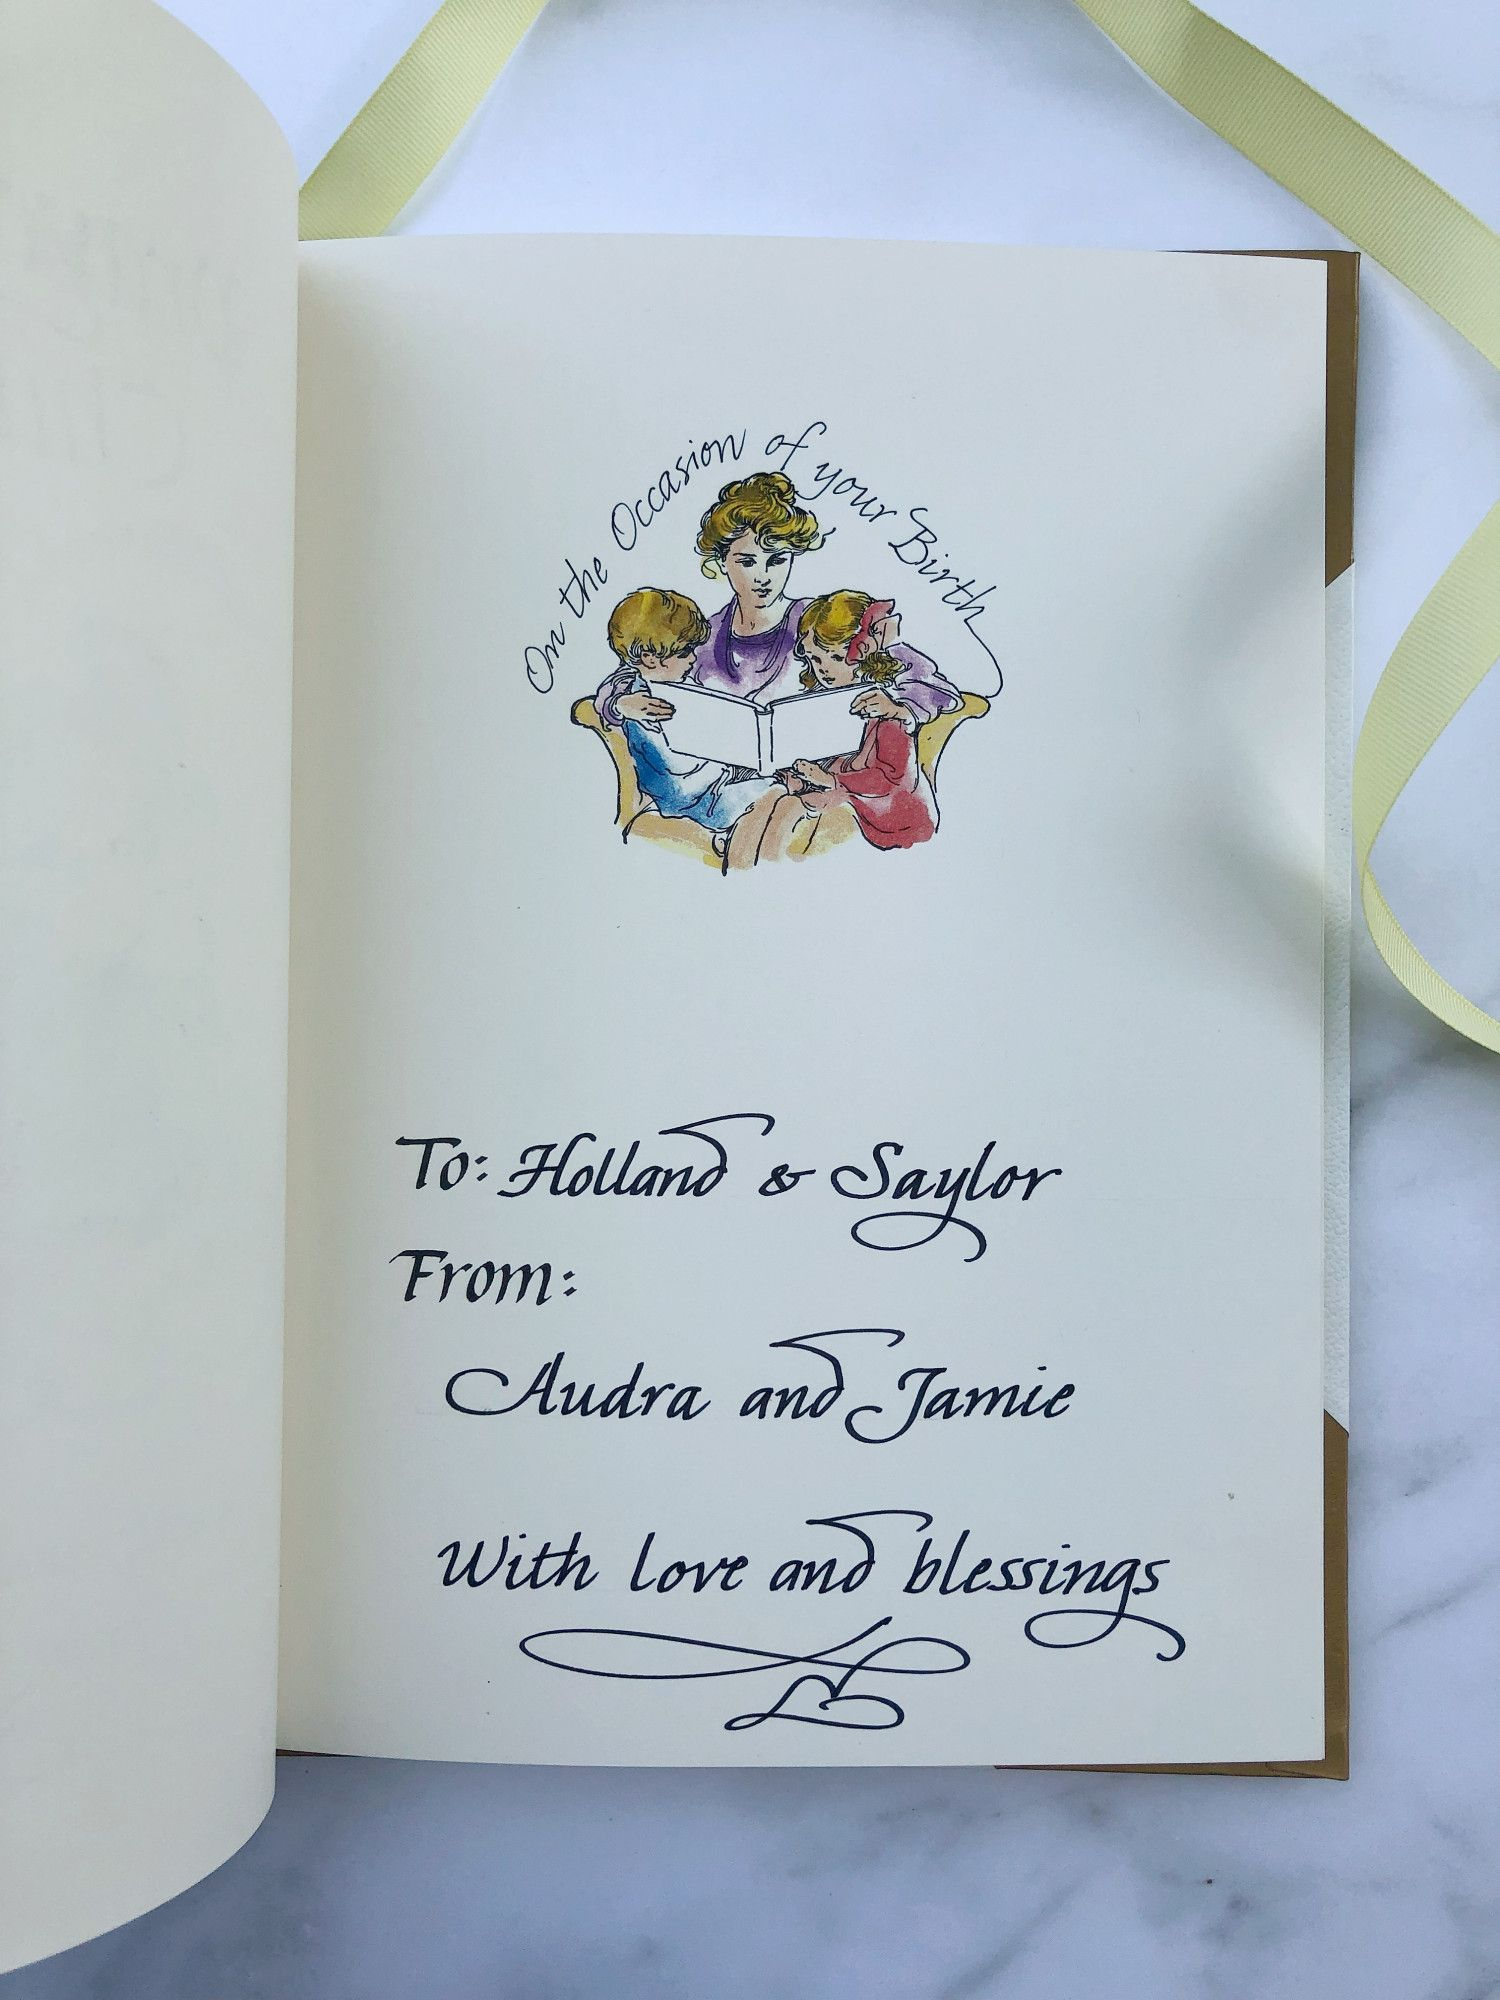 Special Baptism Gift Ideas In 2020 Baptism Gifts Gifts For Kids Christening Gifts